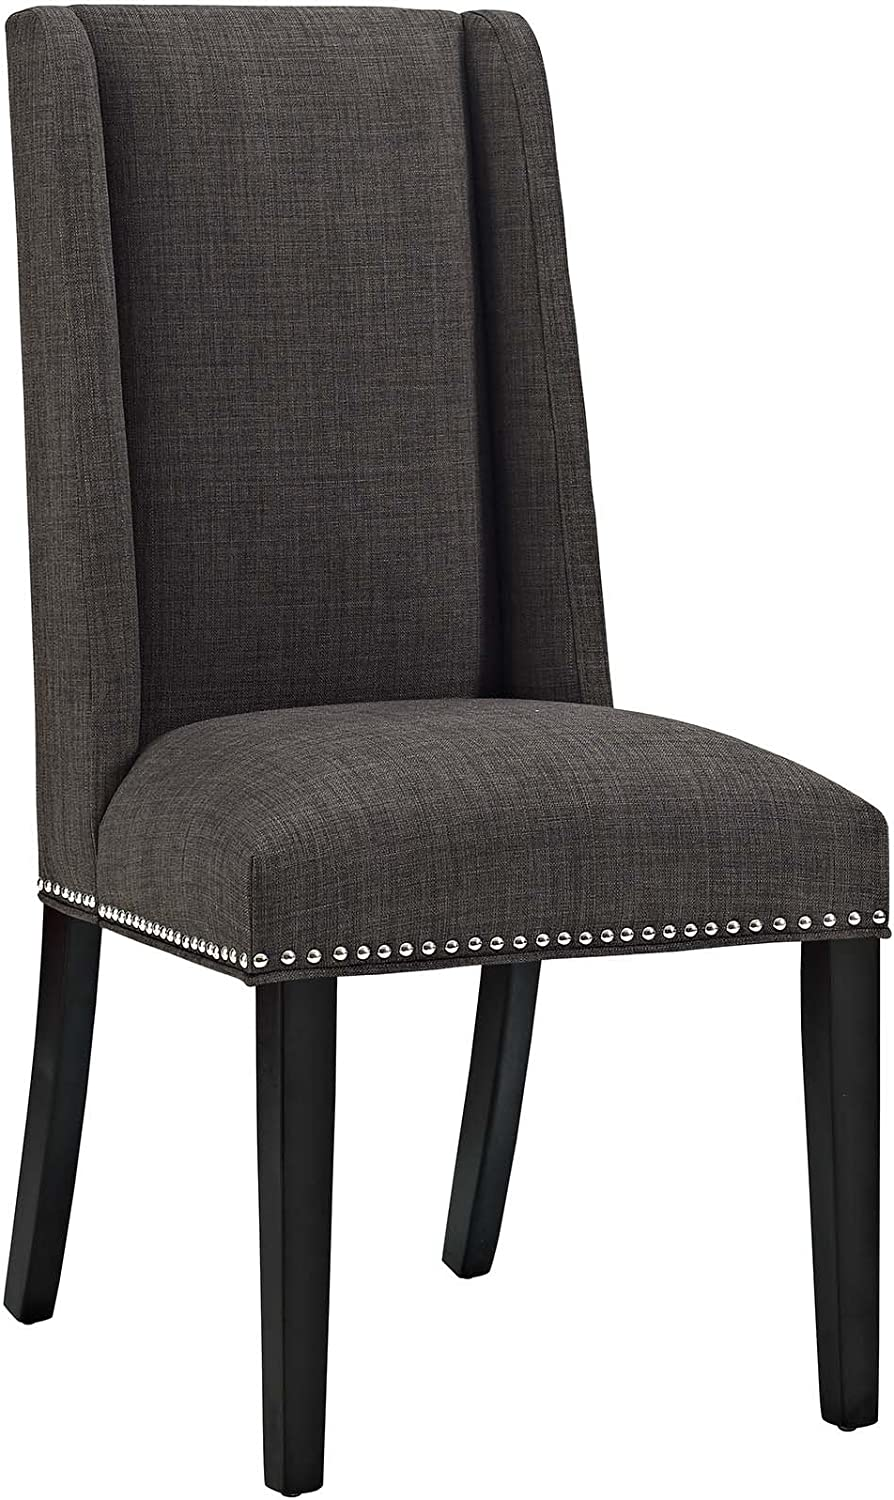 Modway MO- Baron Modern Tall Back Wood Upholstered Fabric, Dining Chair, Brown